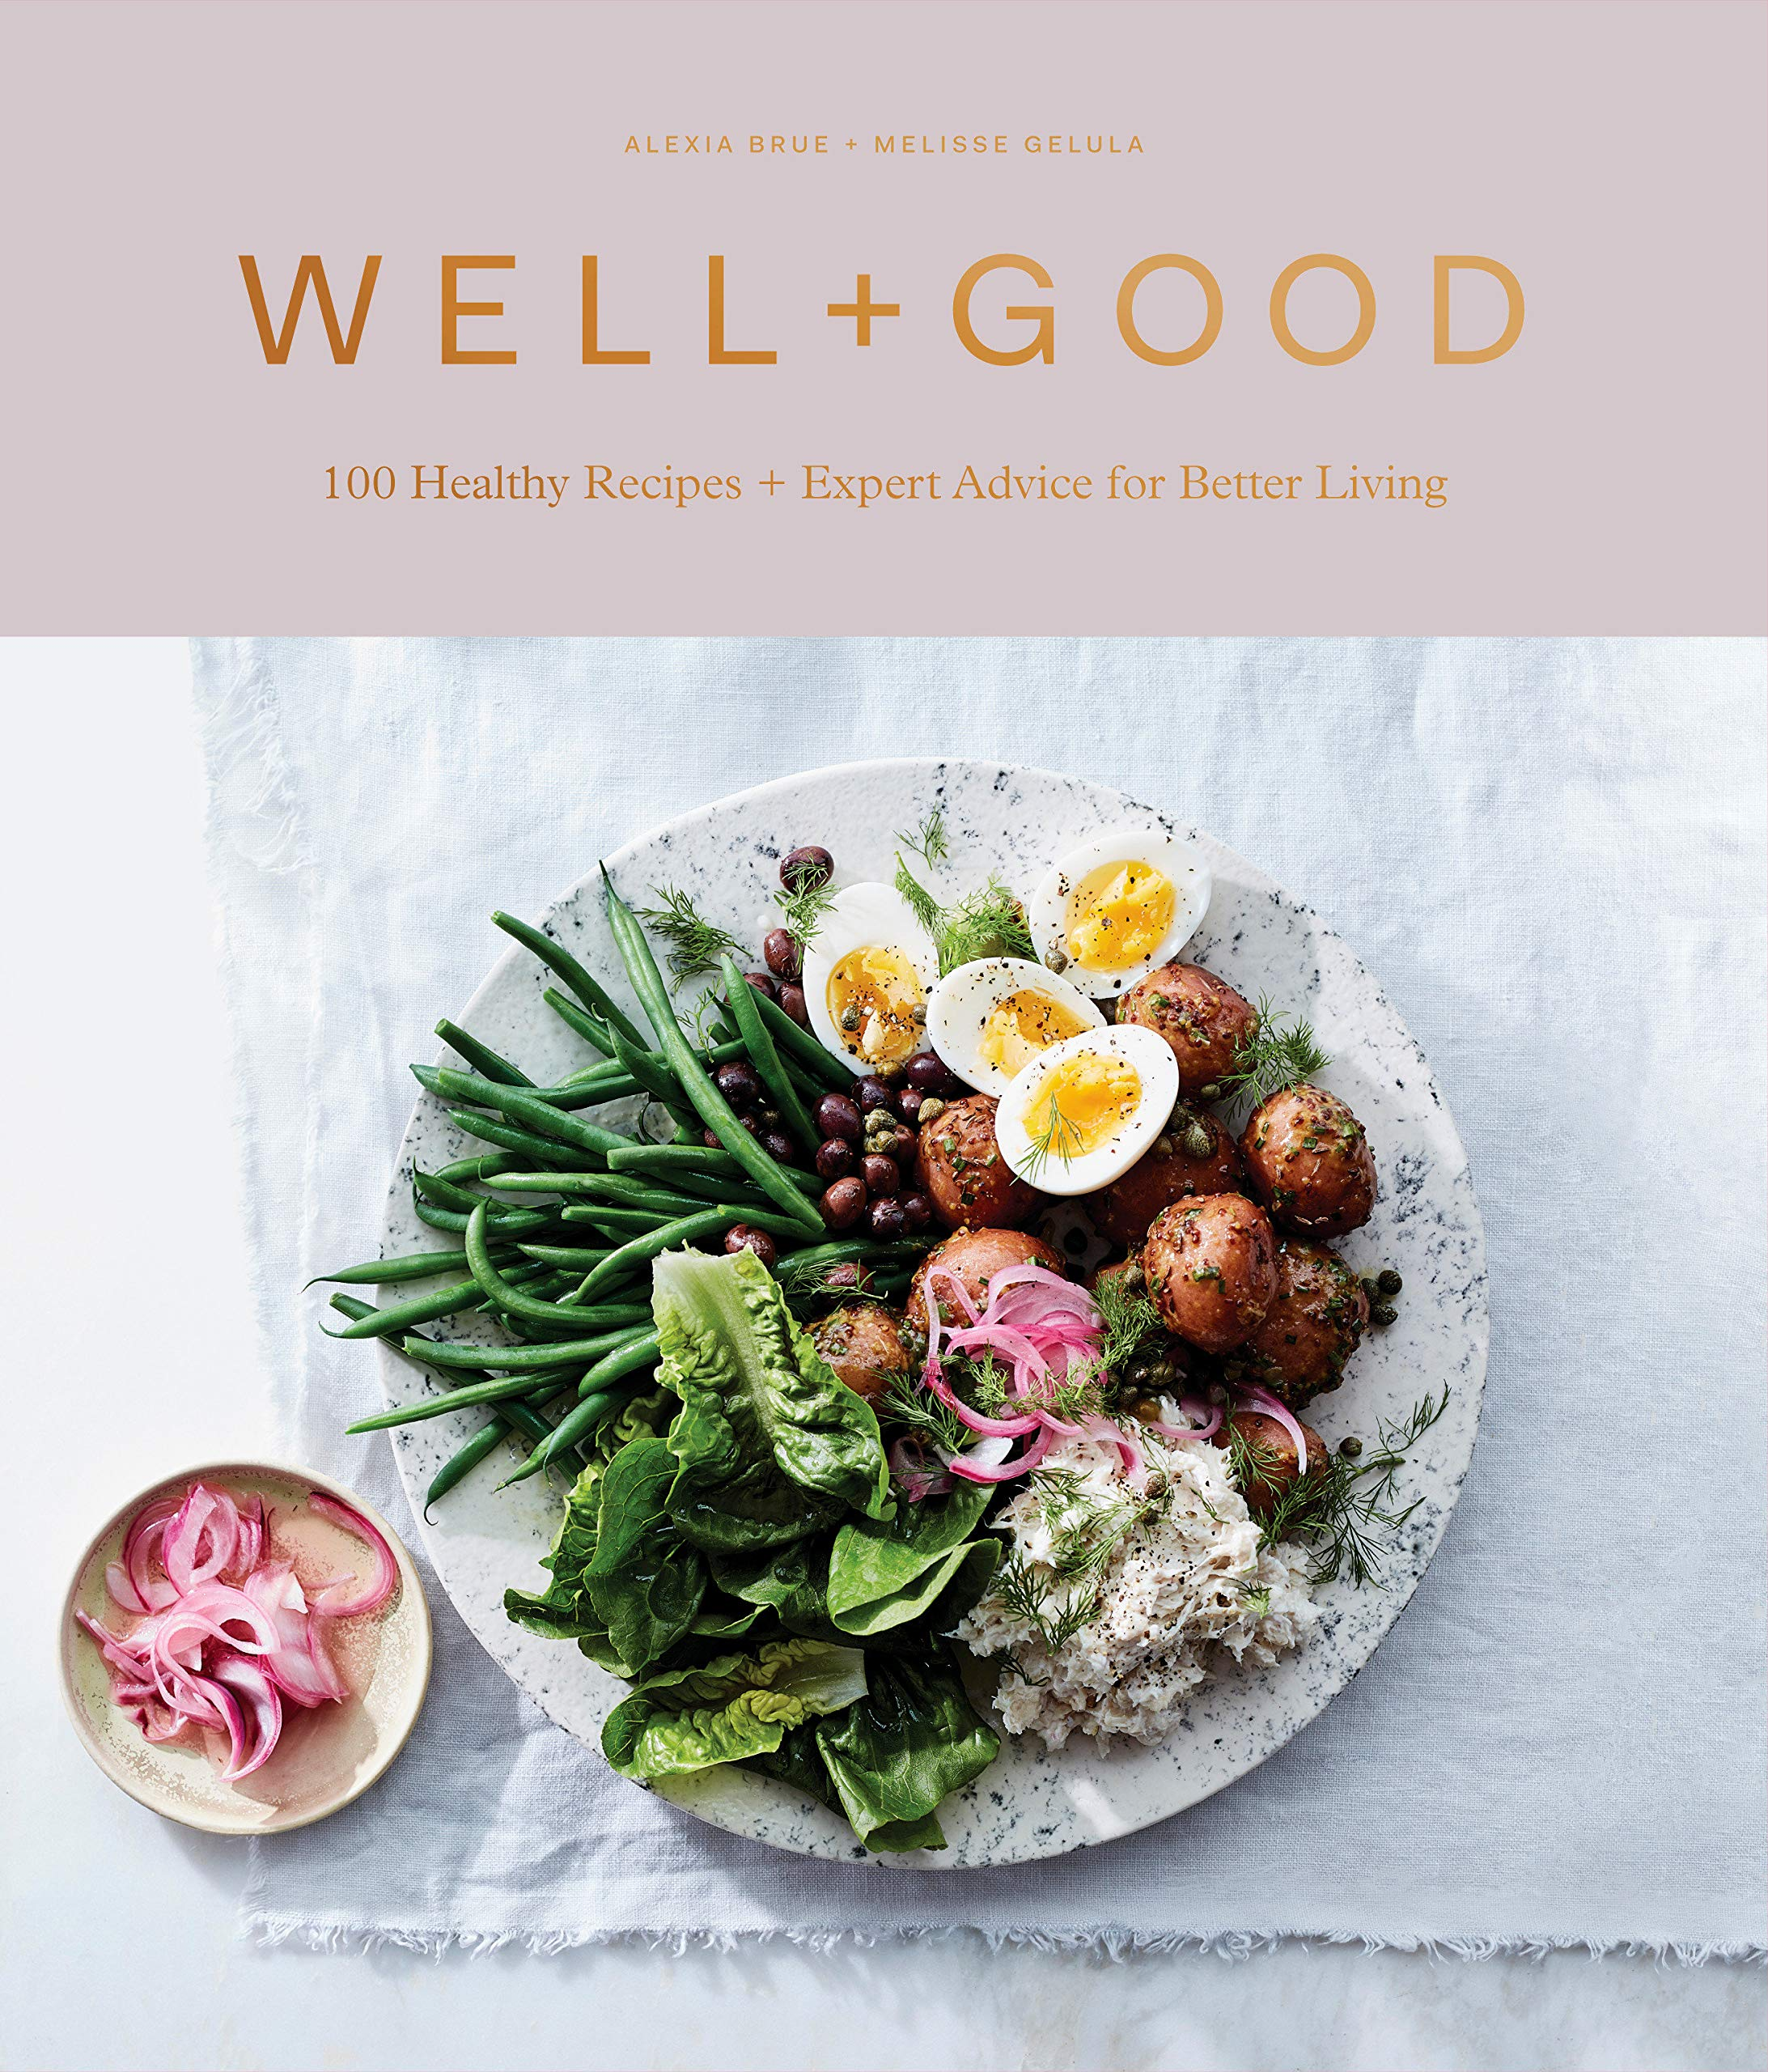 Well+Good Cookbook: 100 Healthy Recipes + Expert Advice for Better Living 1